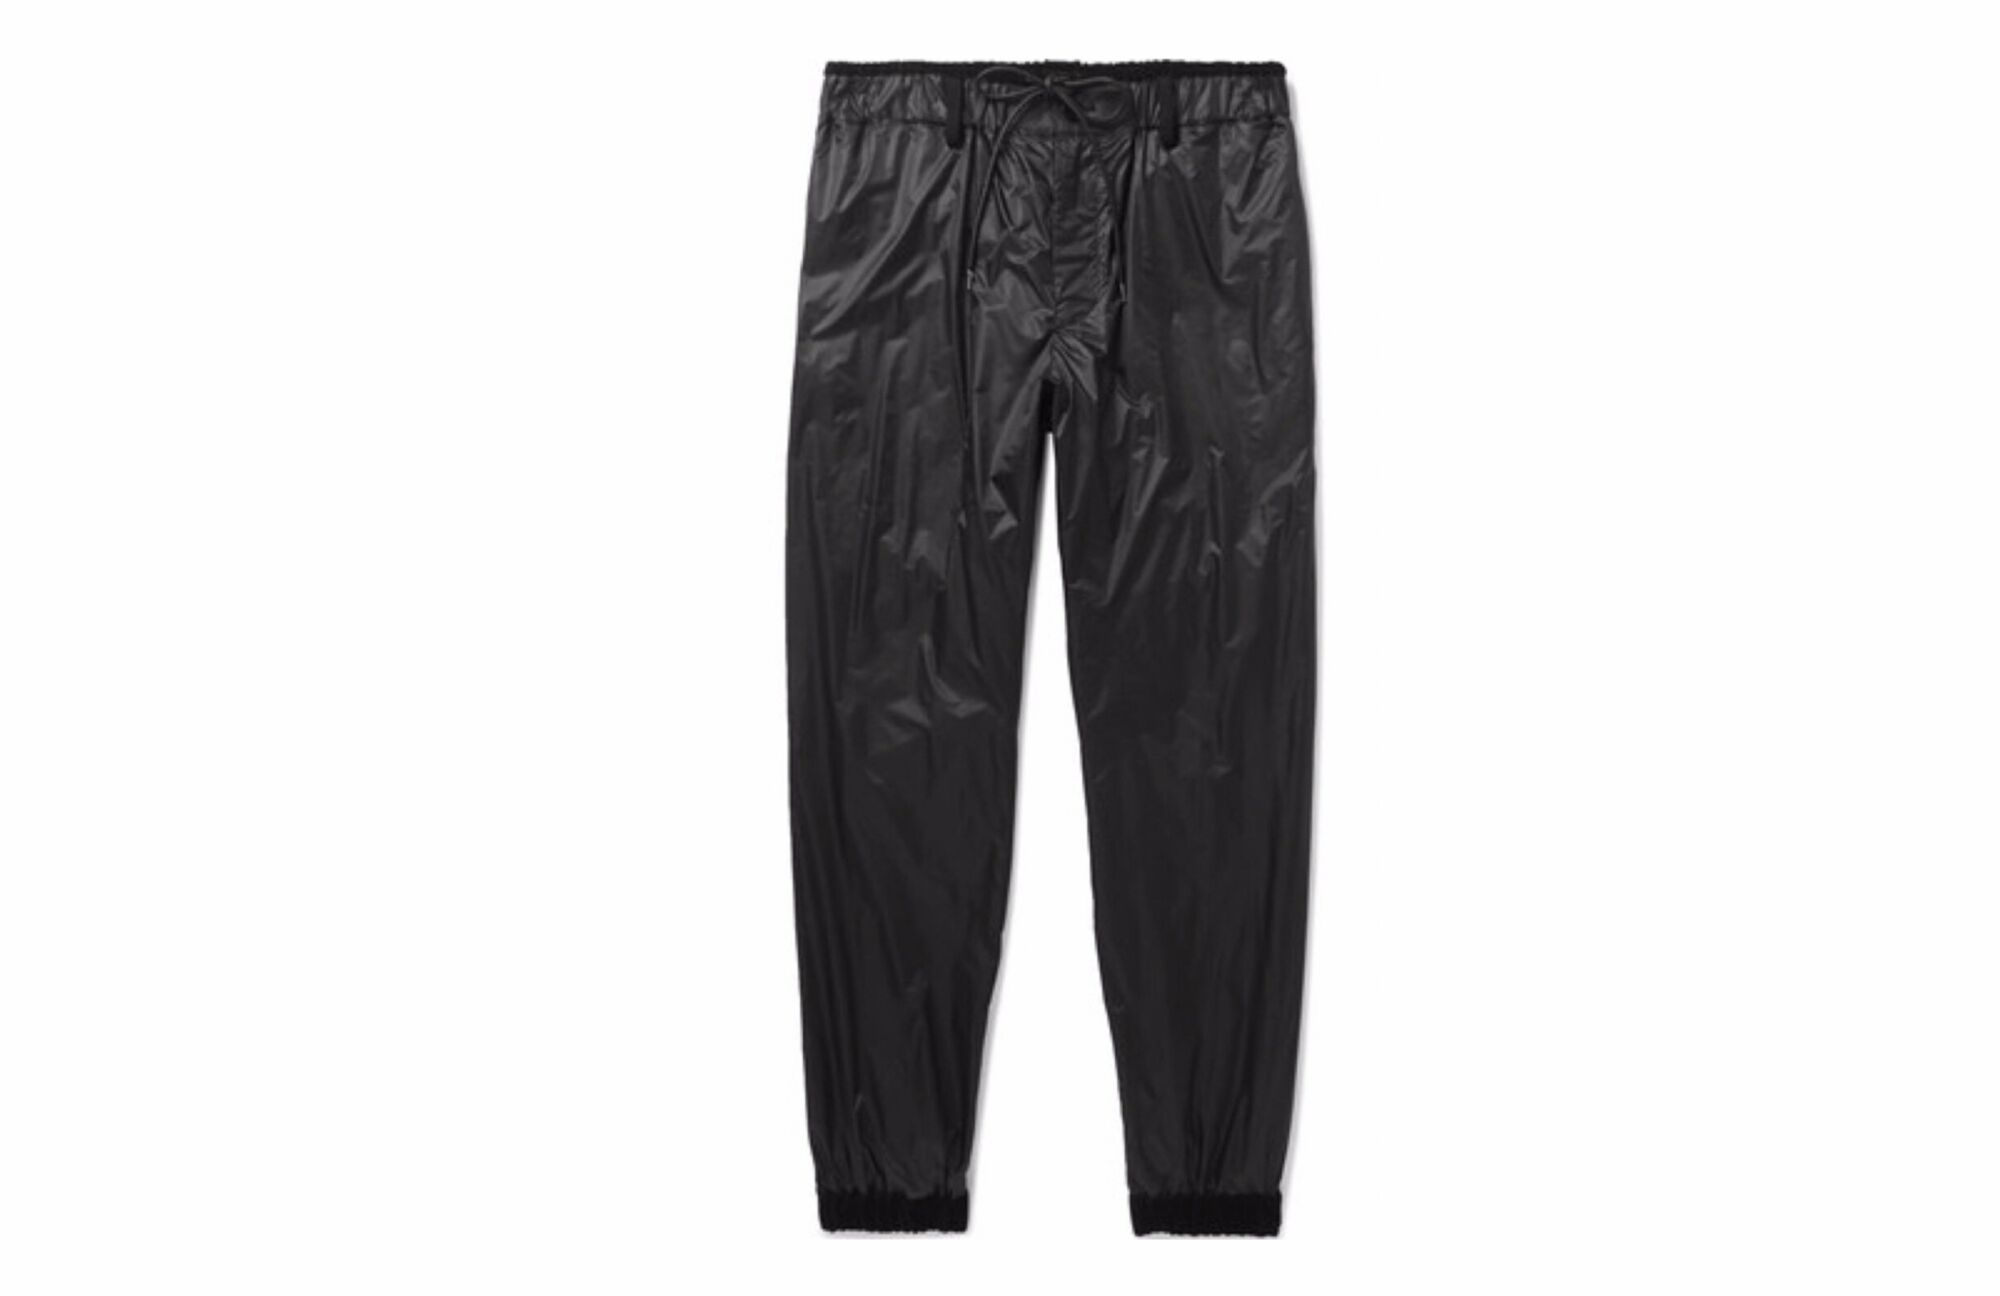 Sacai black jogger pants